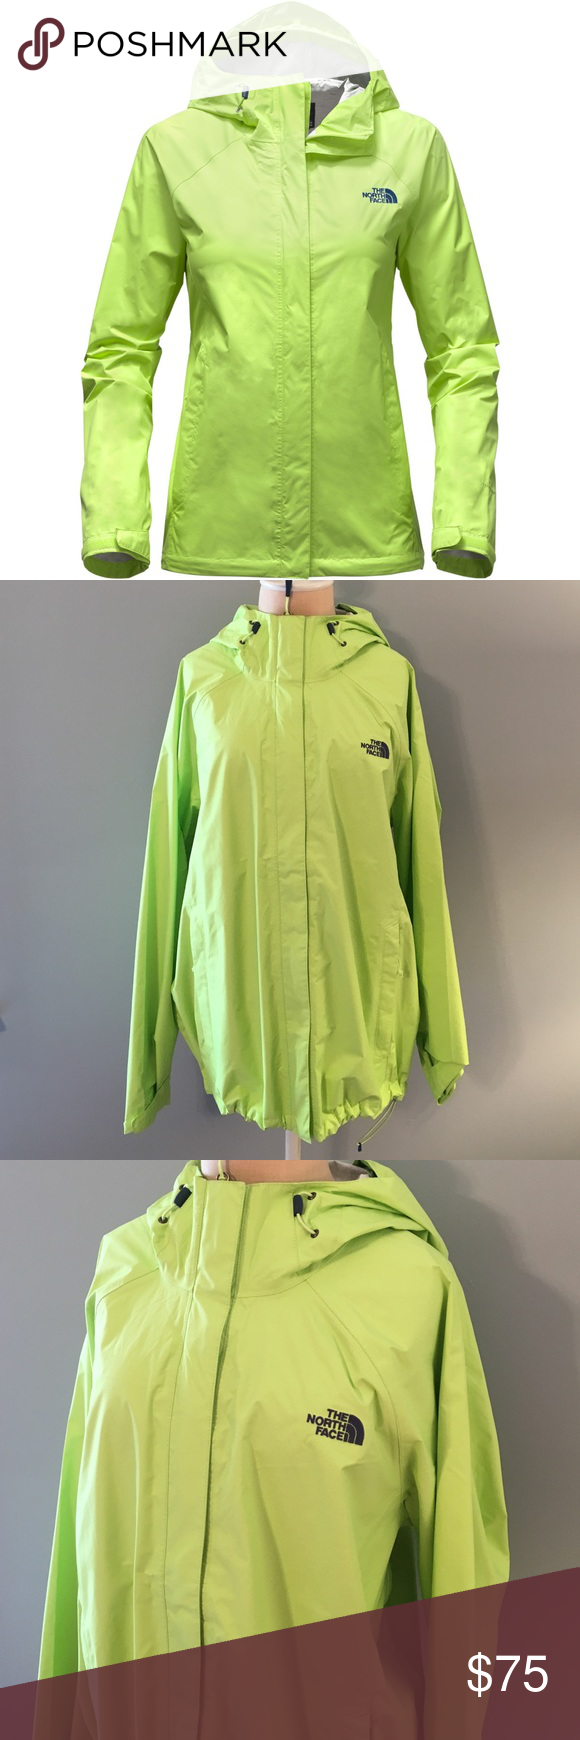 772595dee372 Women s The North Face Venture Jacket Size XXL. Color is Sharp Green. The  Women s Venture offers superior year-round storm protection